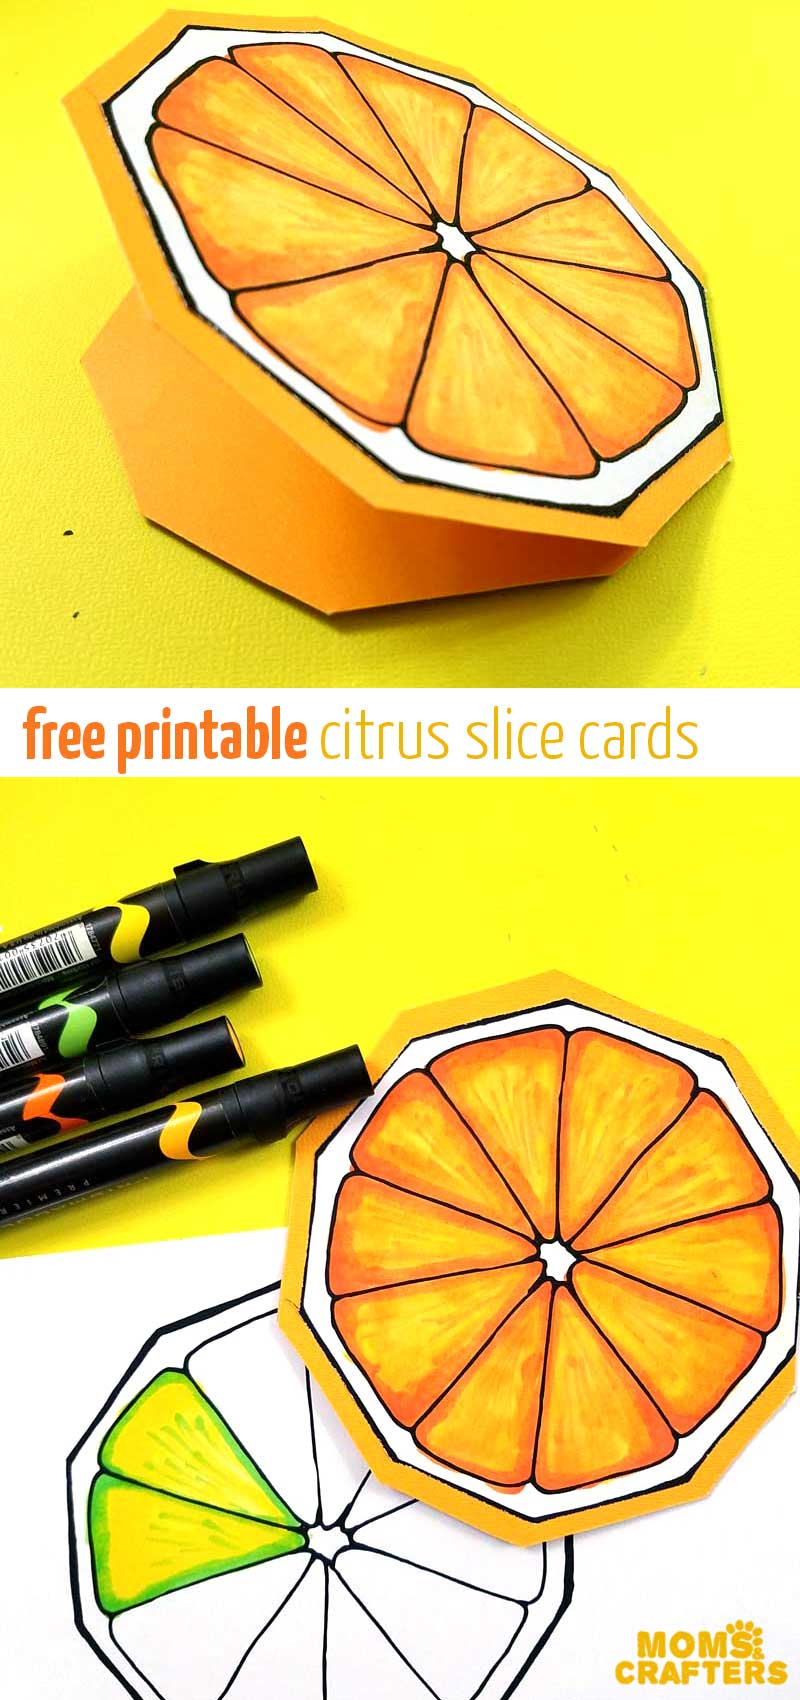 These citrus slice fruit cards are sooo cute - print the free printable and color it in this cool coloring page for kids, teens, tweens, and adults! This cool paper cardmaking craft is so simple and easy for beginners - perfect for Summer! #cardmaking #citrus #momsandcrafters